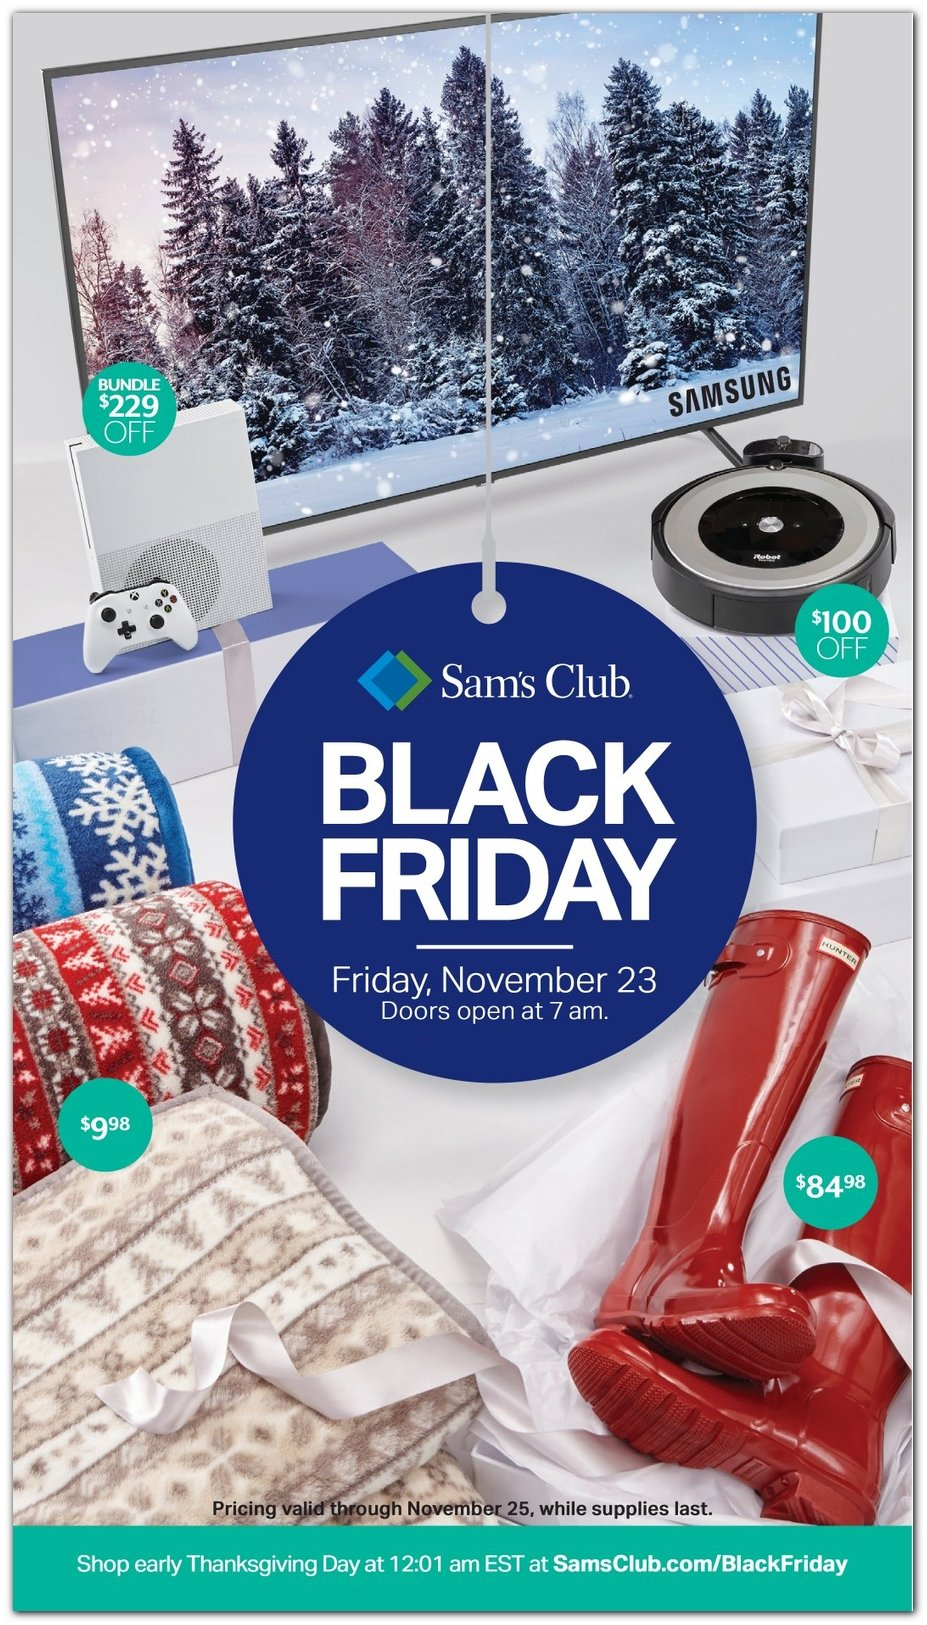 Sam's Club Black Friday 2018 Page 1